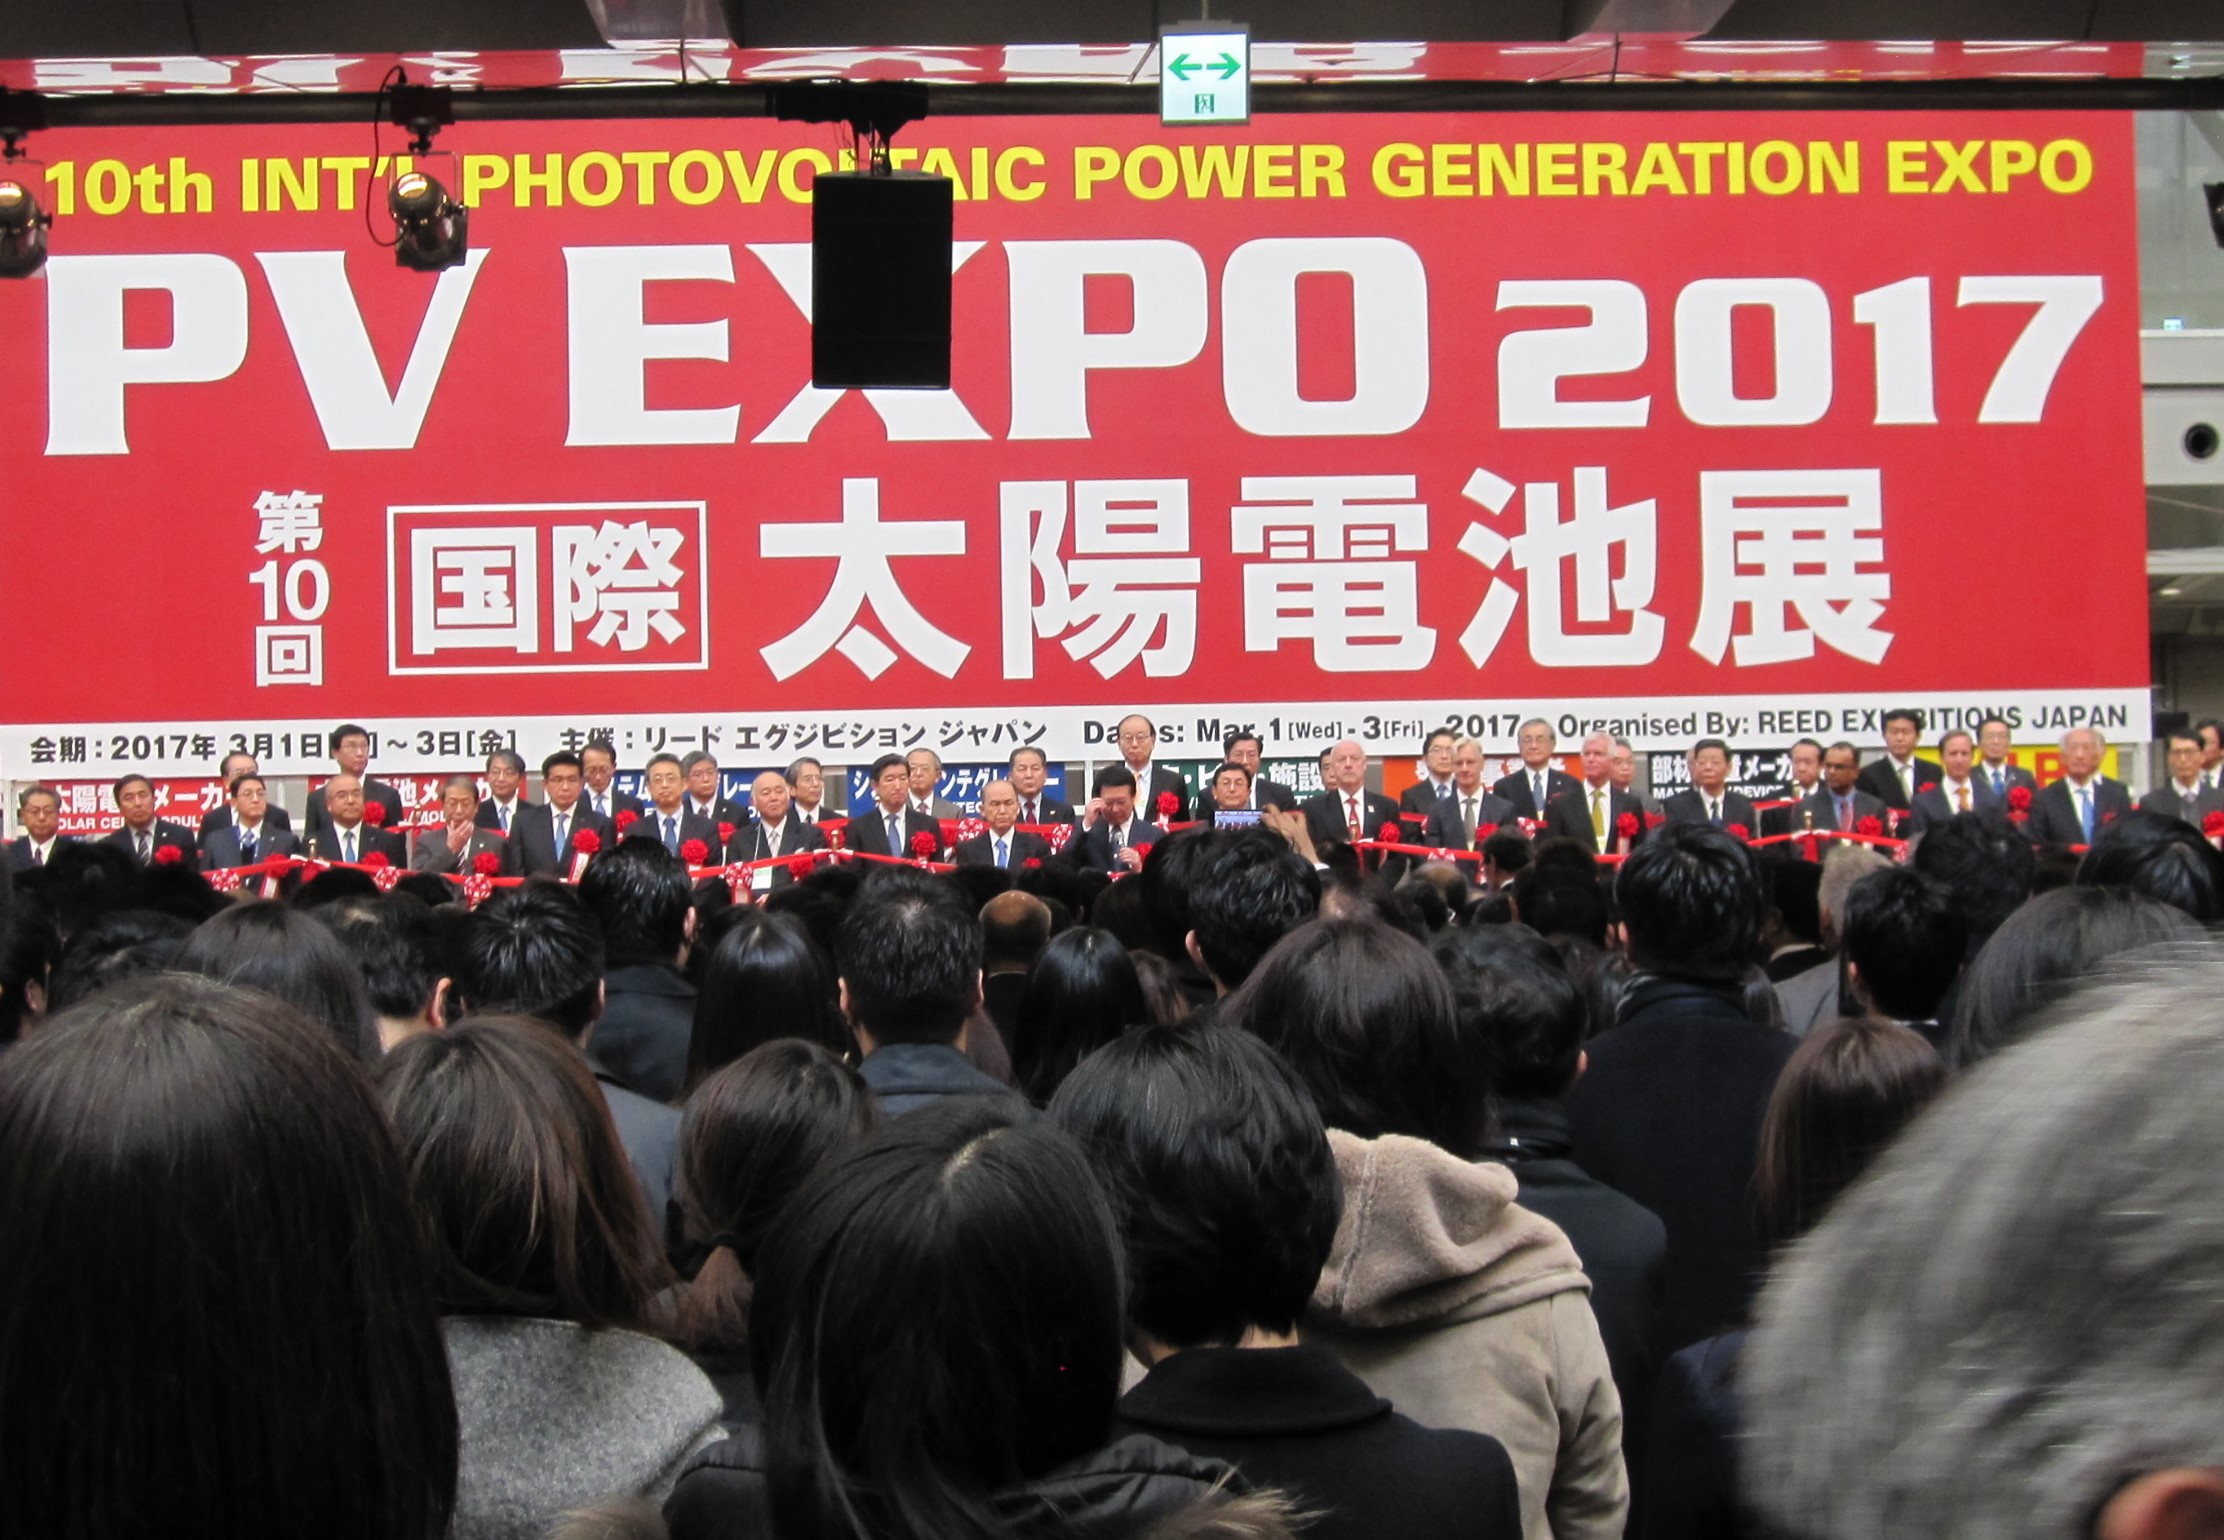 The opening ceremony for PV Expo in Tokyo this morning. An estimated 70,000 people attend the whole World Smart Energy Week event, which also includes expos on fuel cells, batteries and other technologies. Image: Andy Colthorpe.